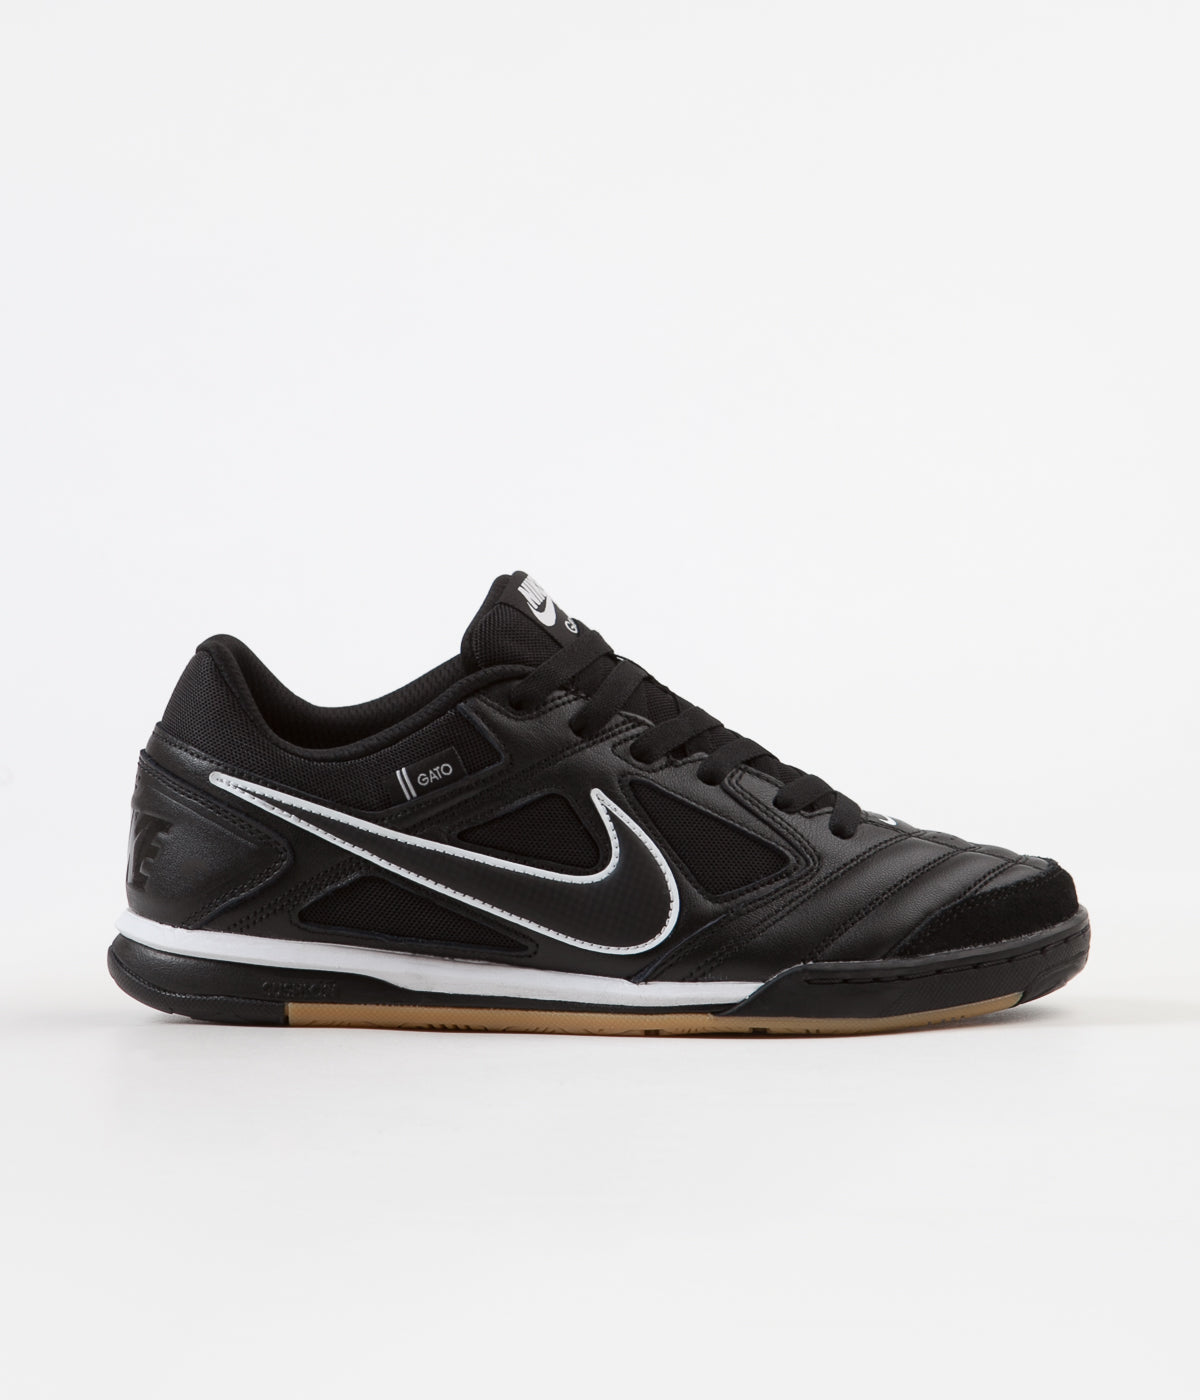 size 40 7280b caabd Nike SB Gato Shoes - Black   Black - White - Gum Light Brown